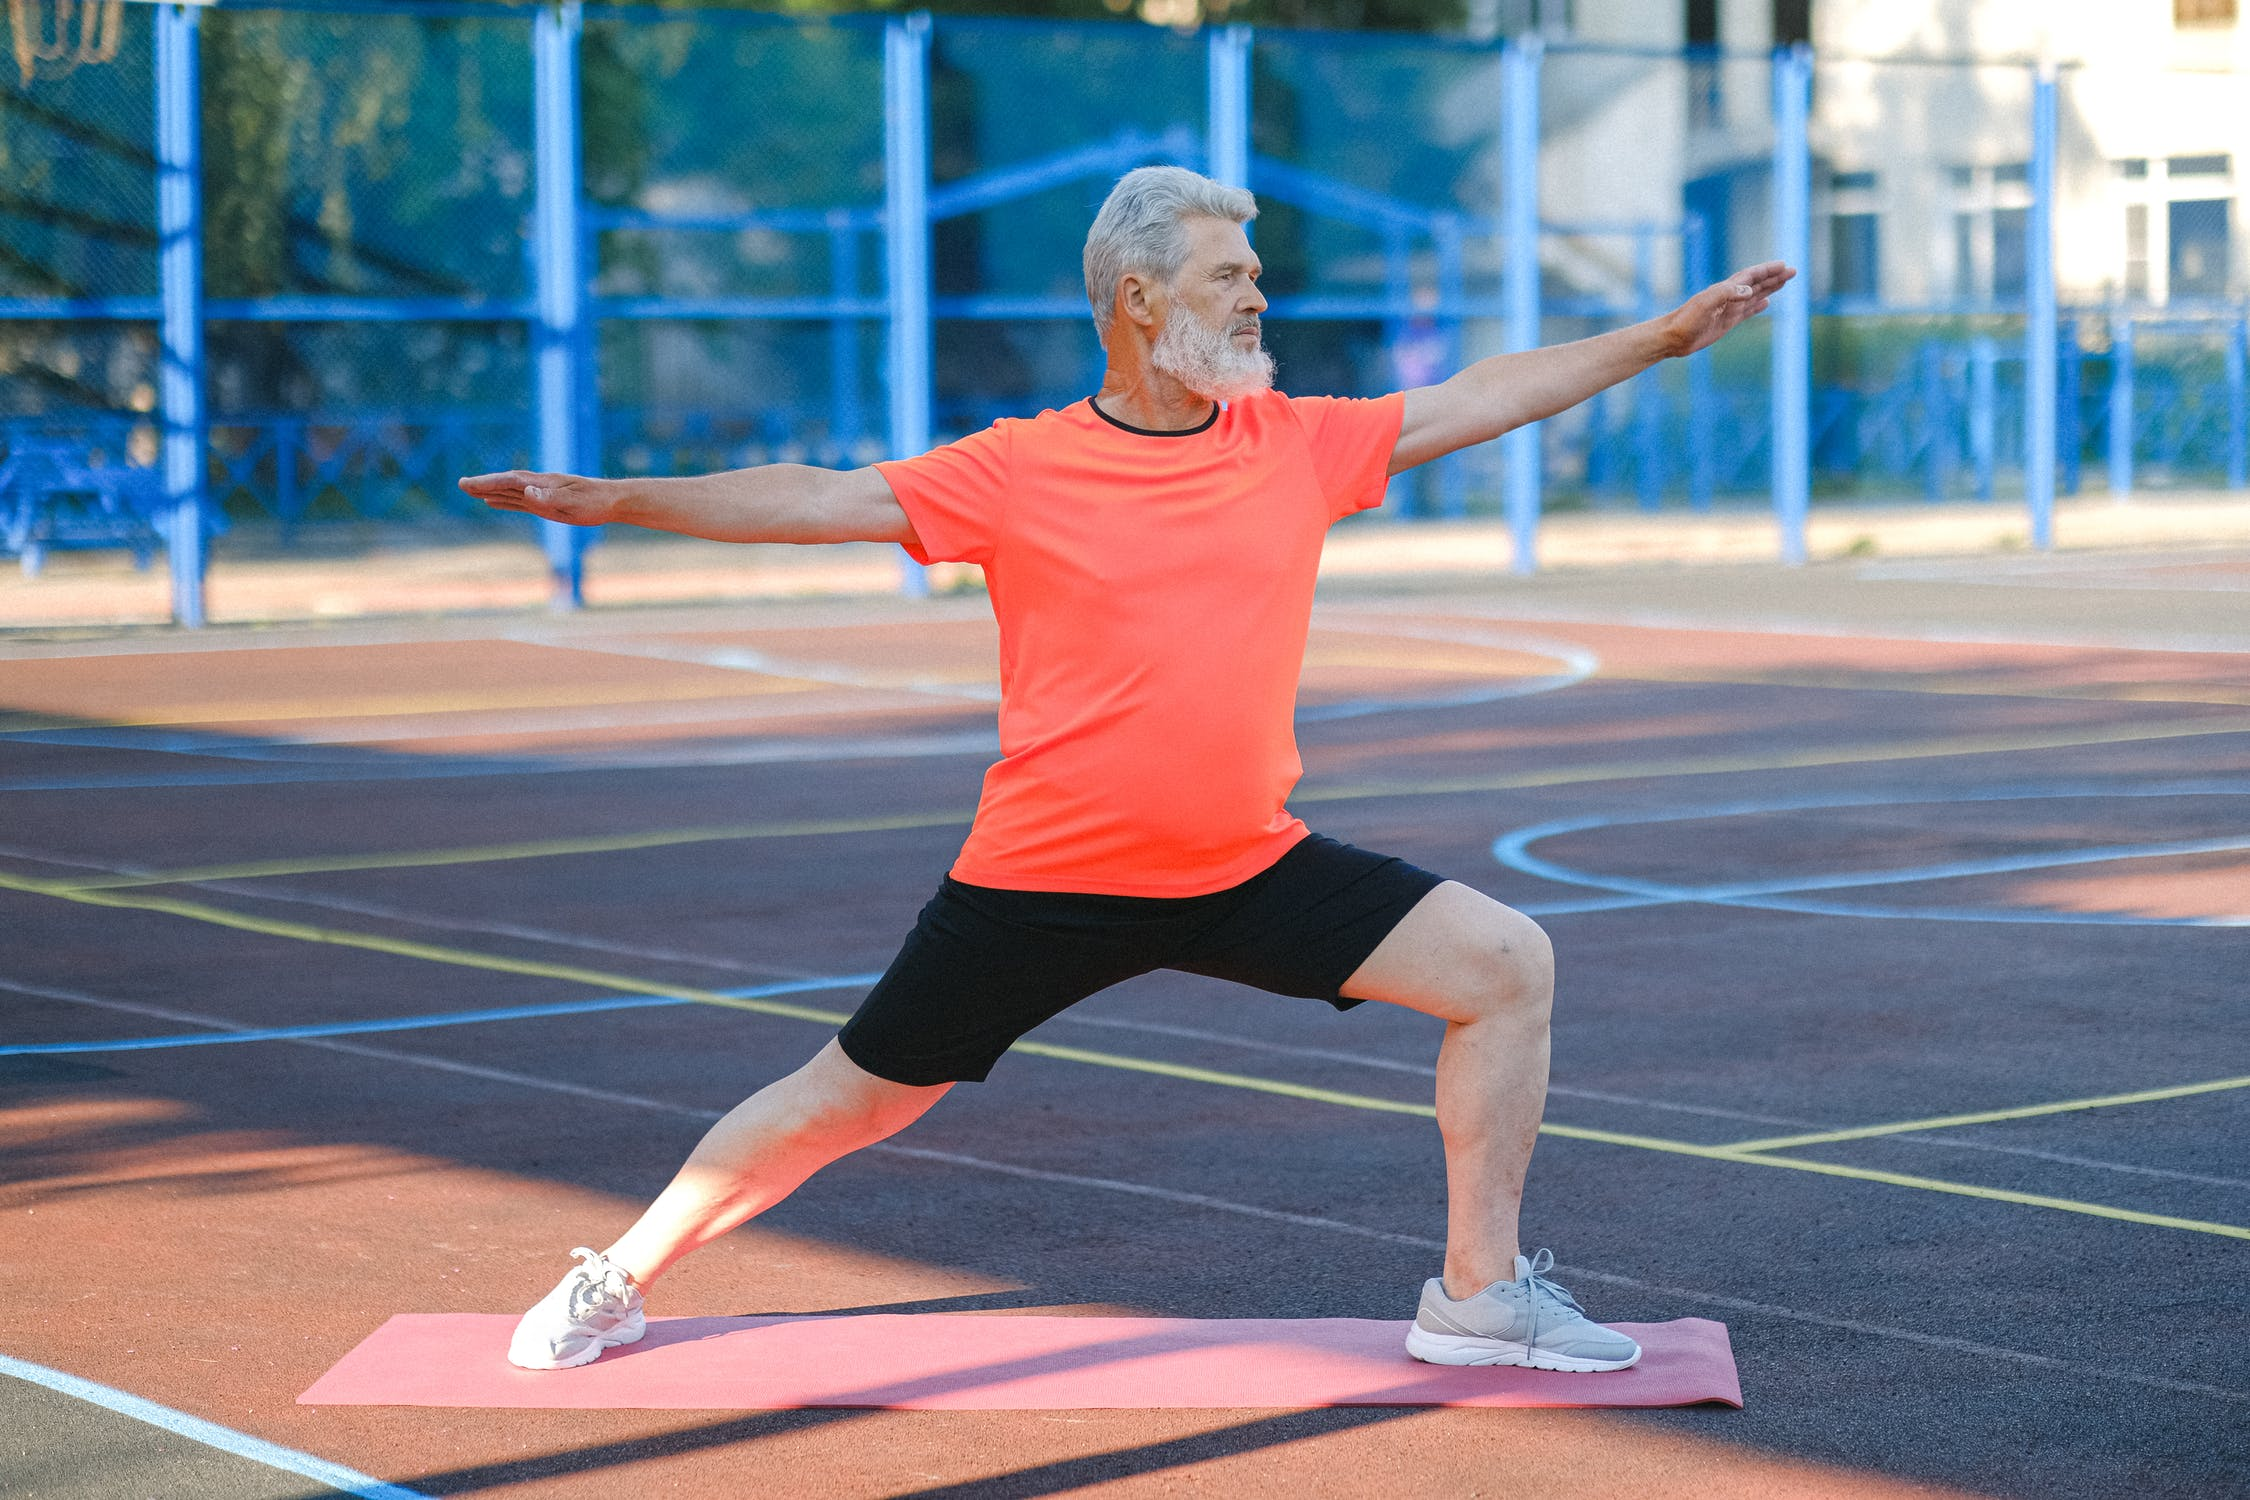 Older Man Bearded Stretching on Tennis Court in Bright Shirt